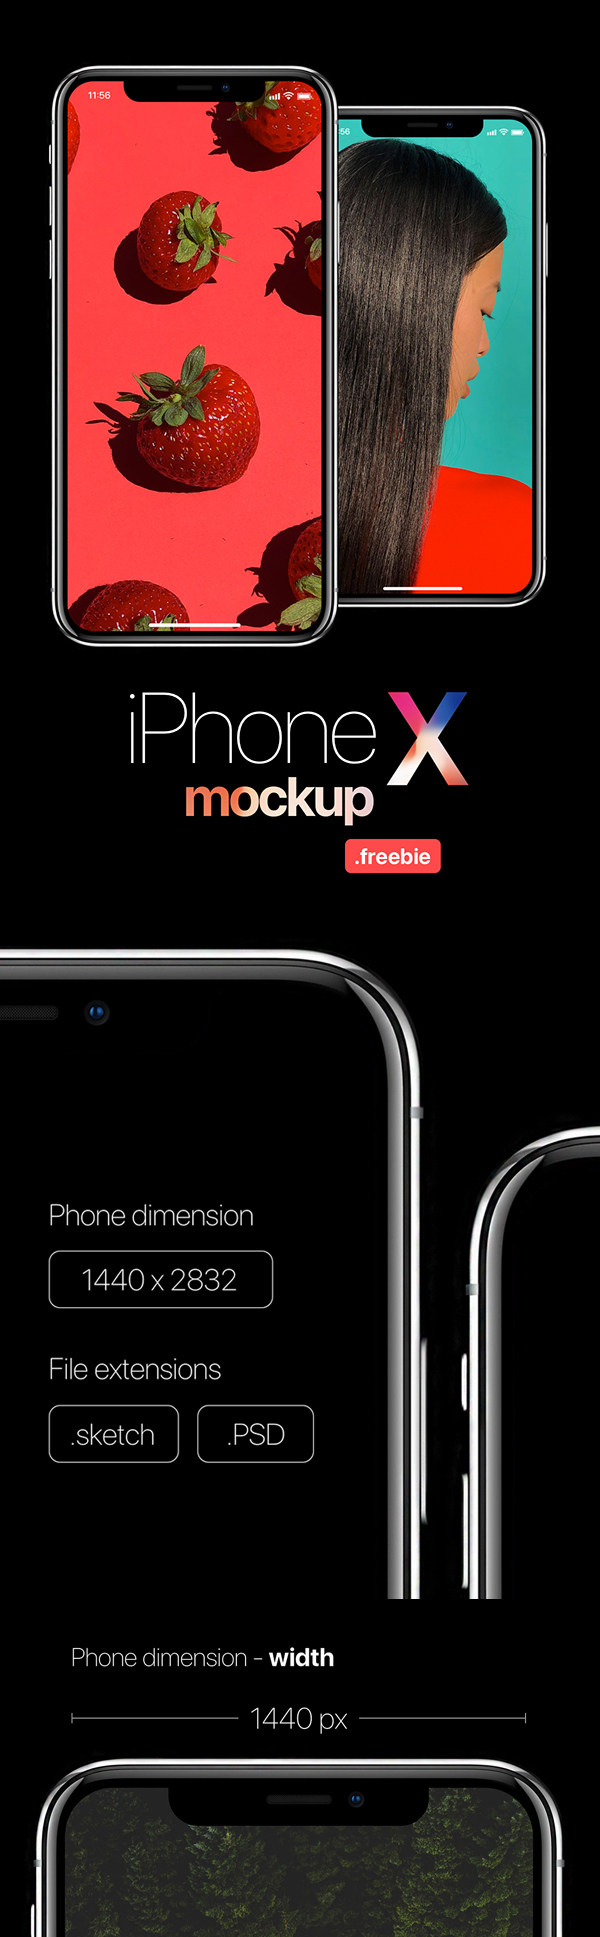 Free Download iPhone X PSD Mockups and Sketch - 5